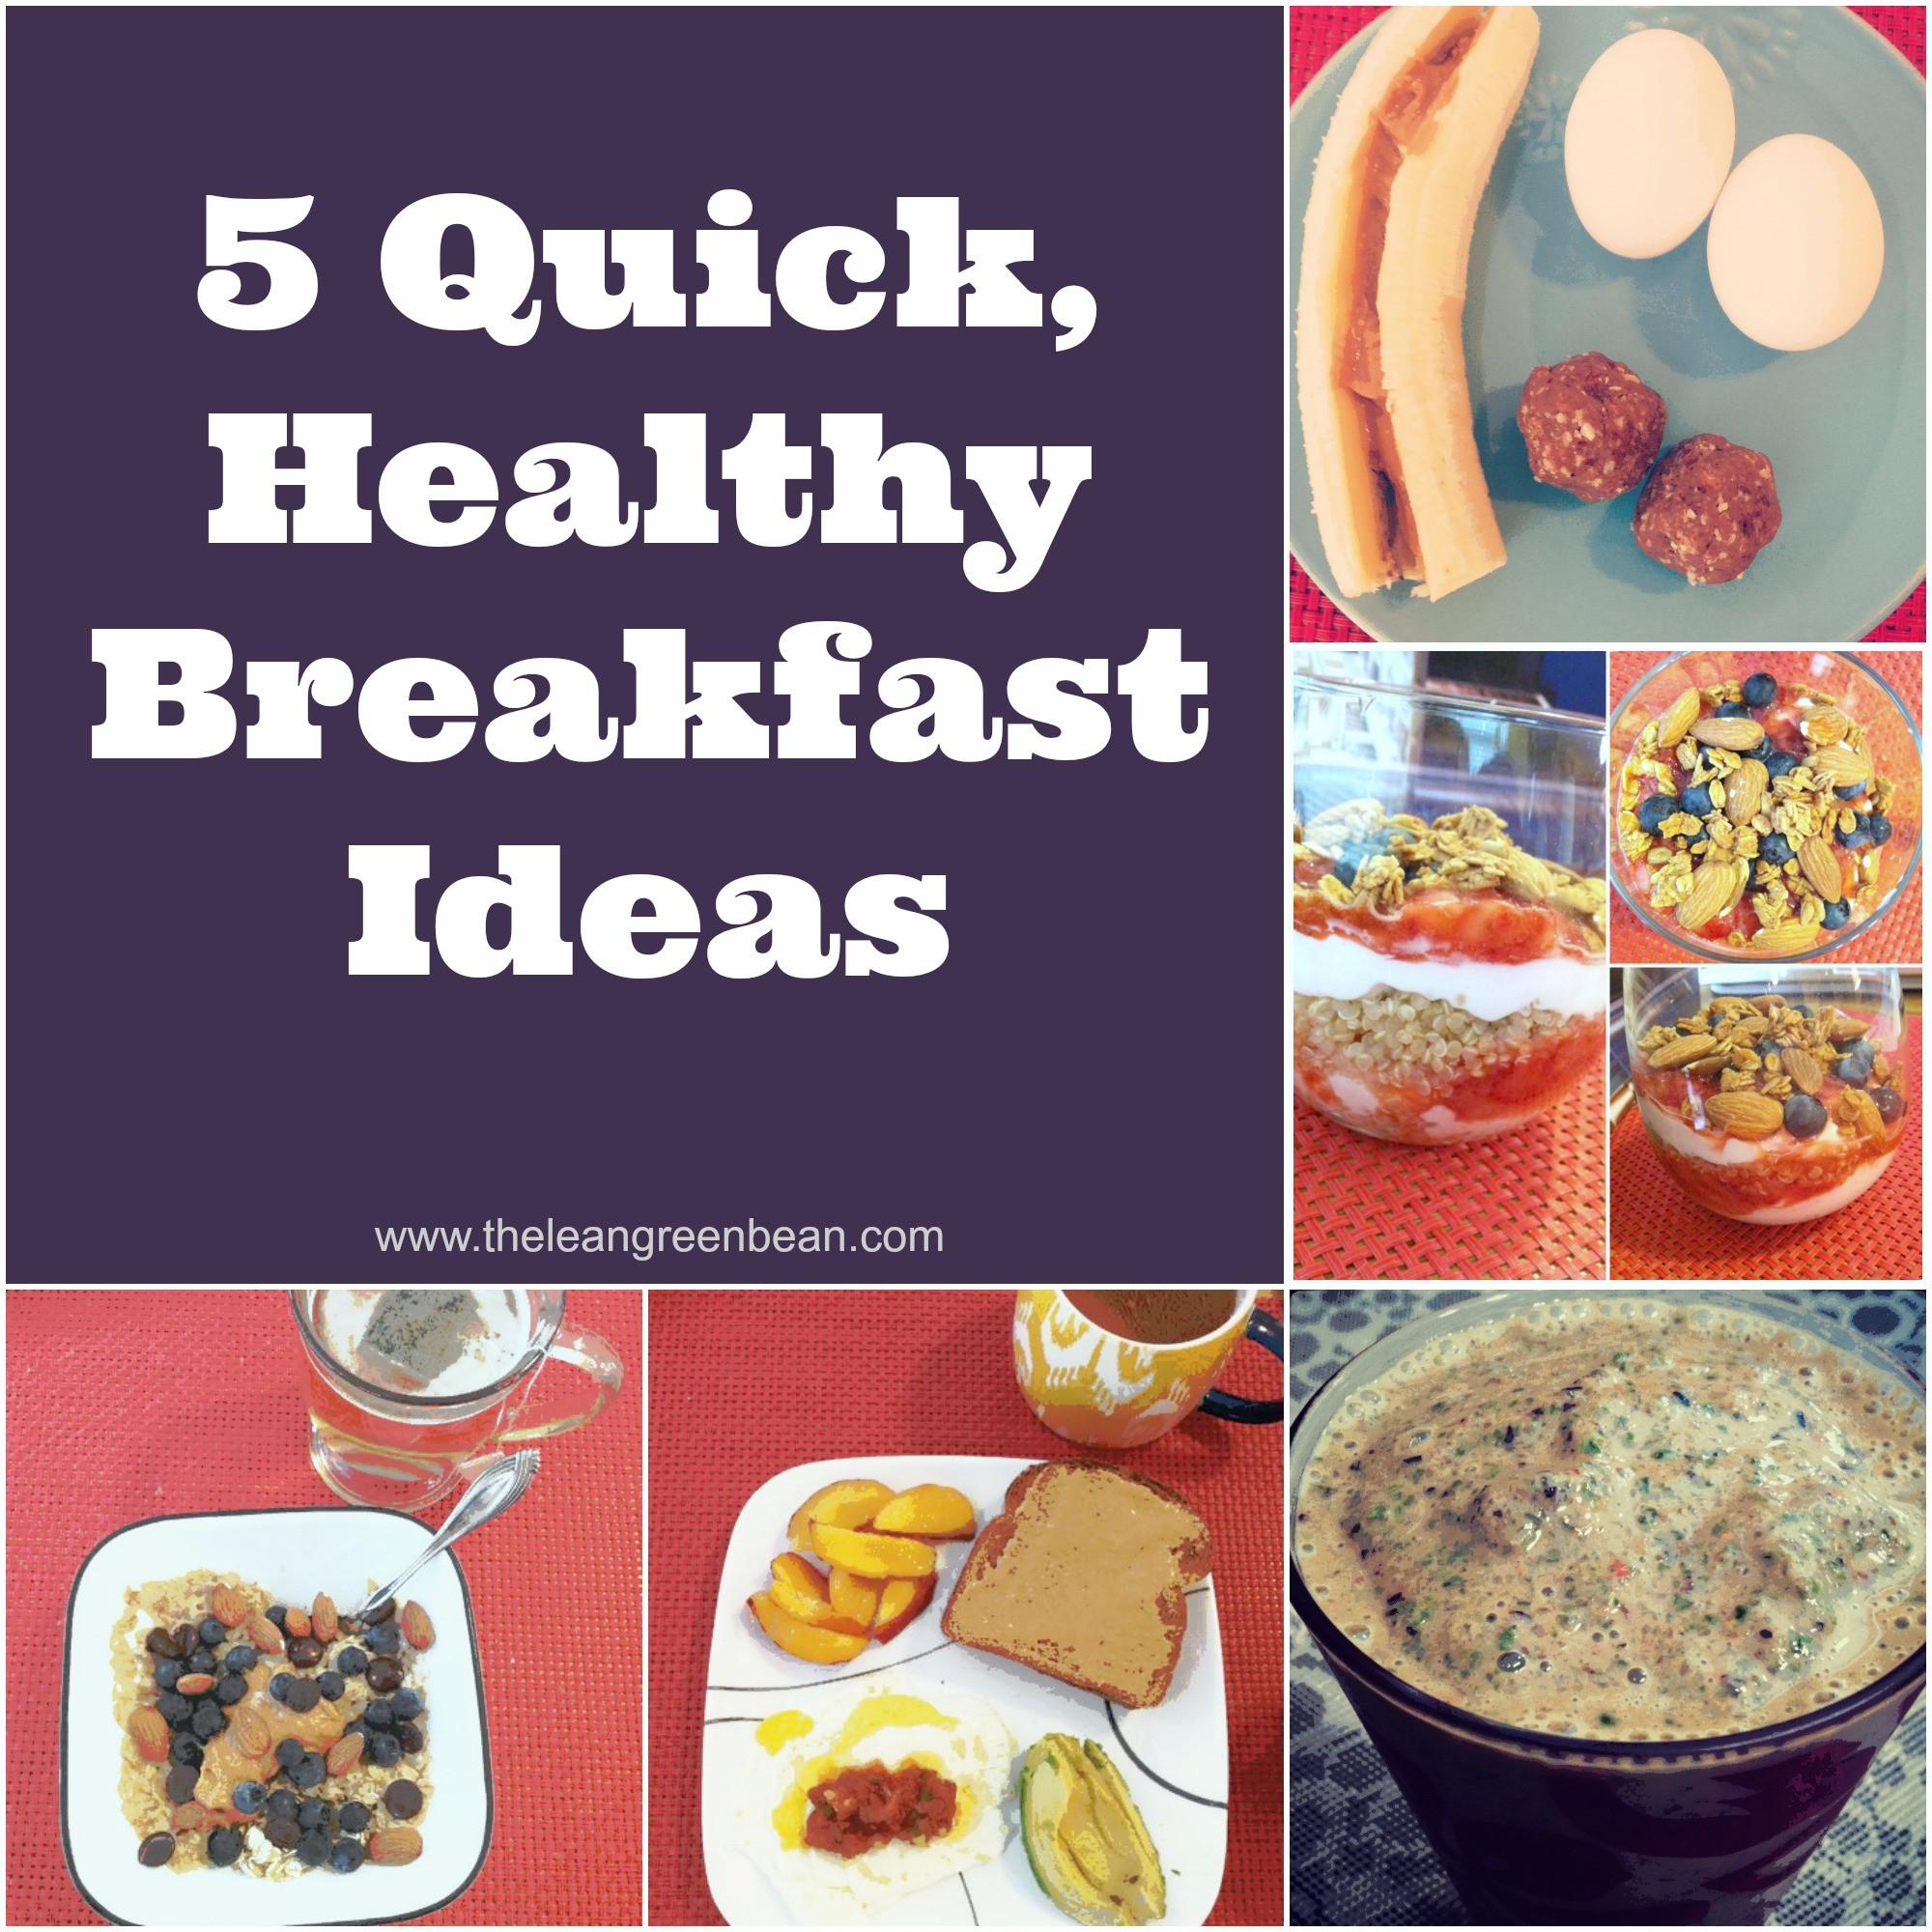 Healthy Quick Breakfast  5 Quick Healthy Breakfast Ideas from a Registered Dietitian